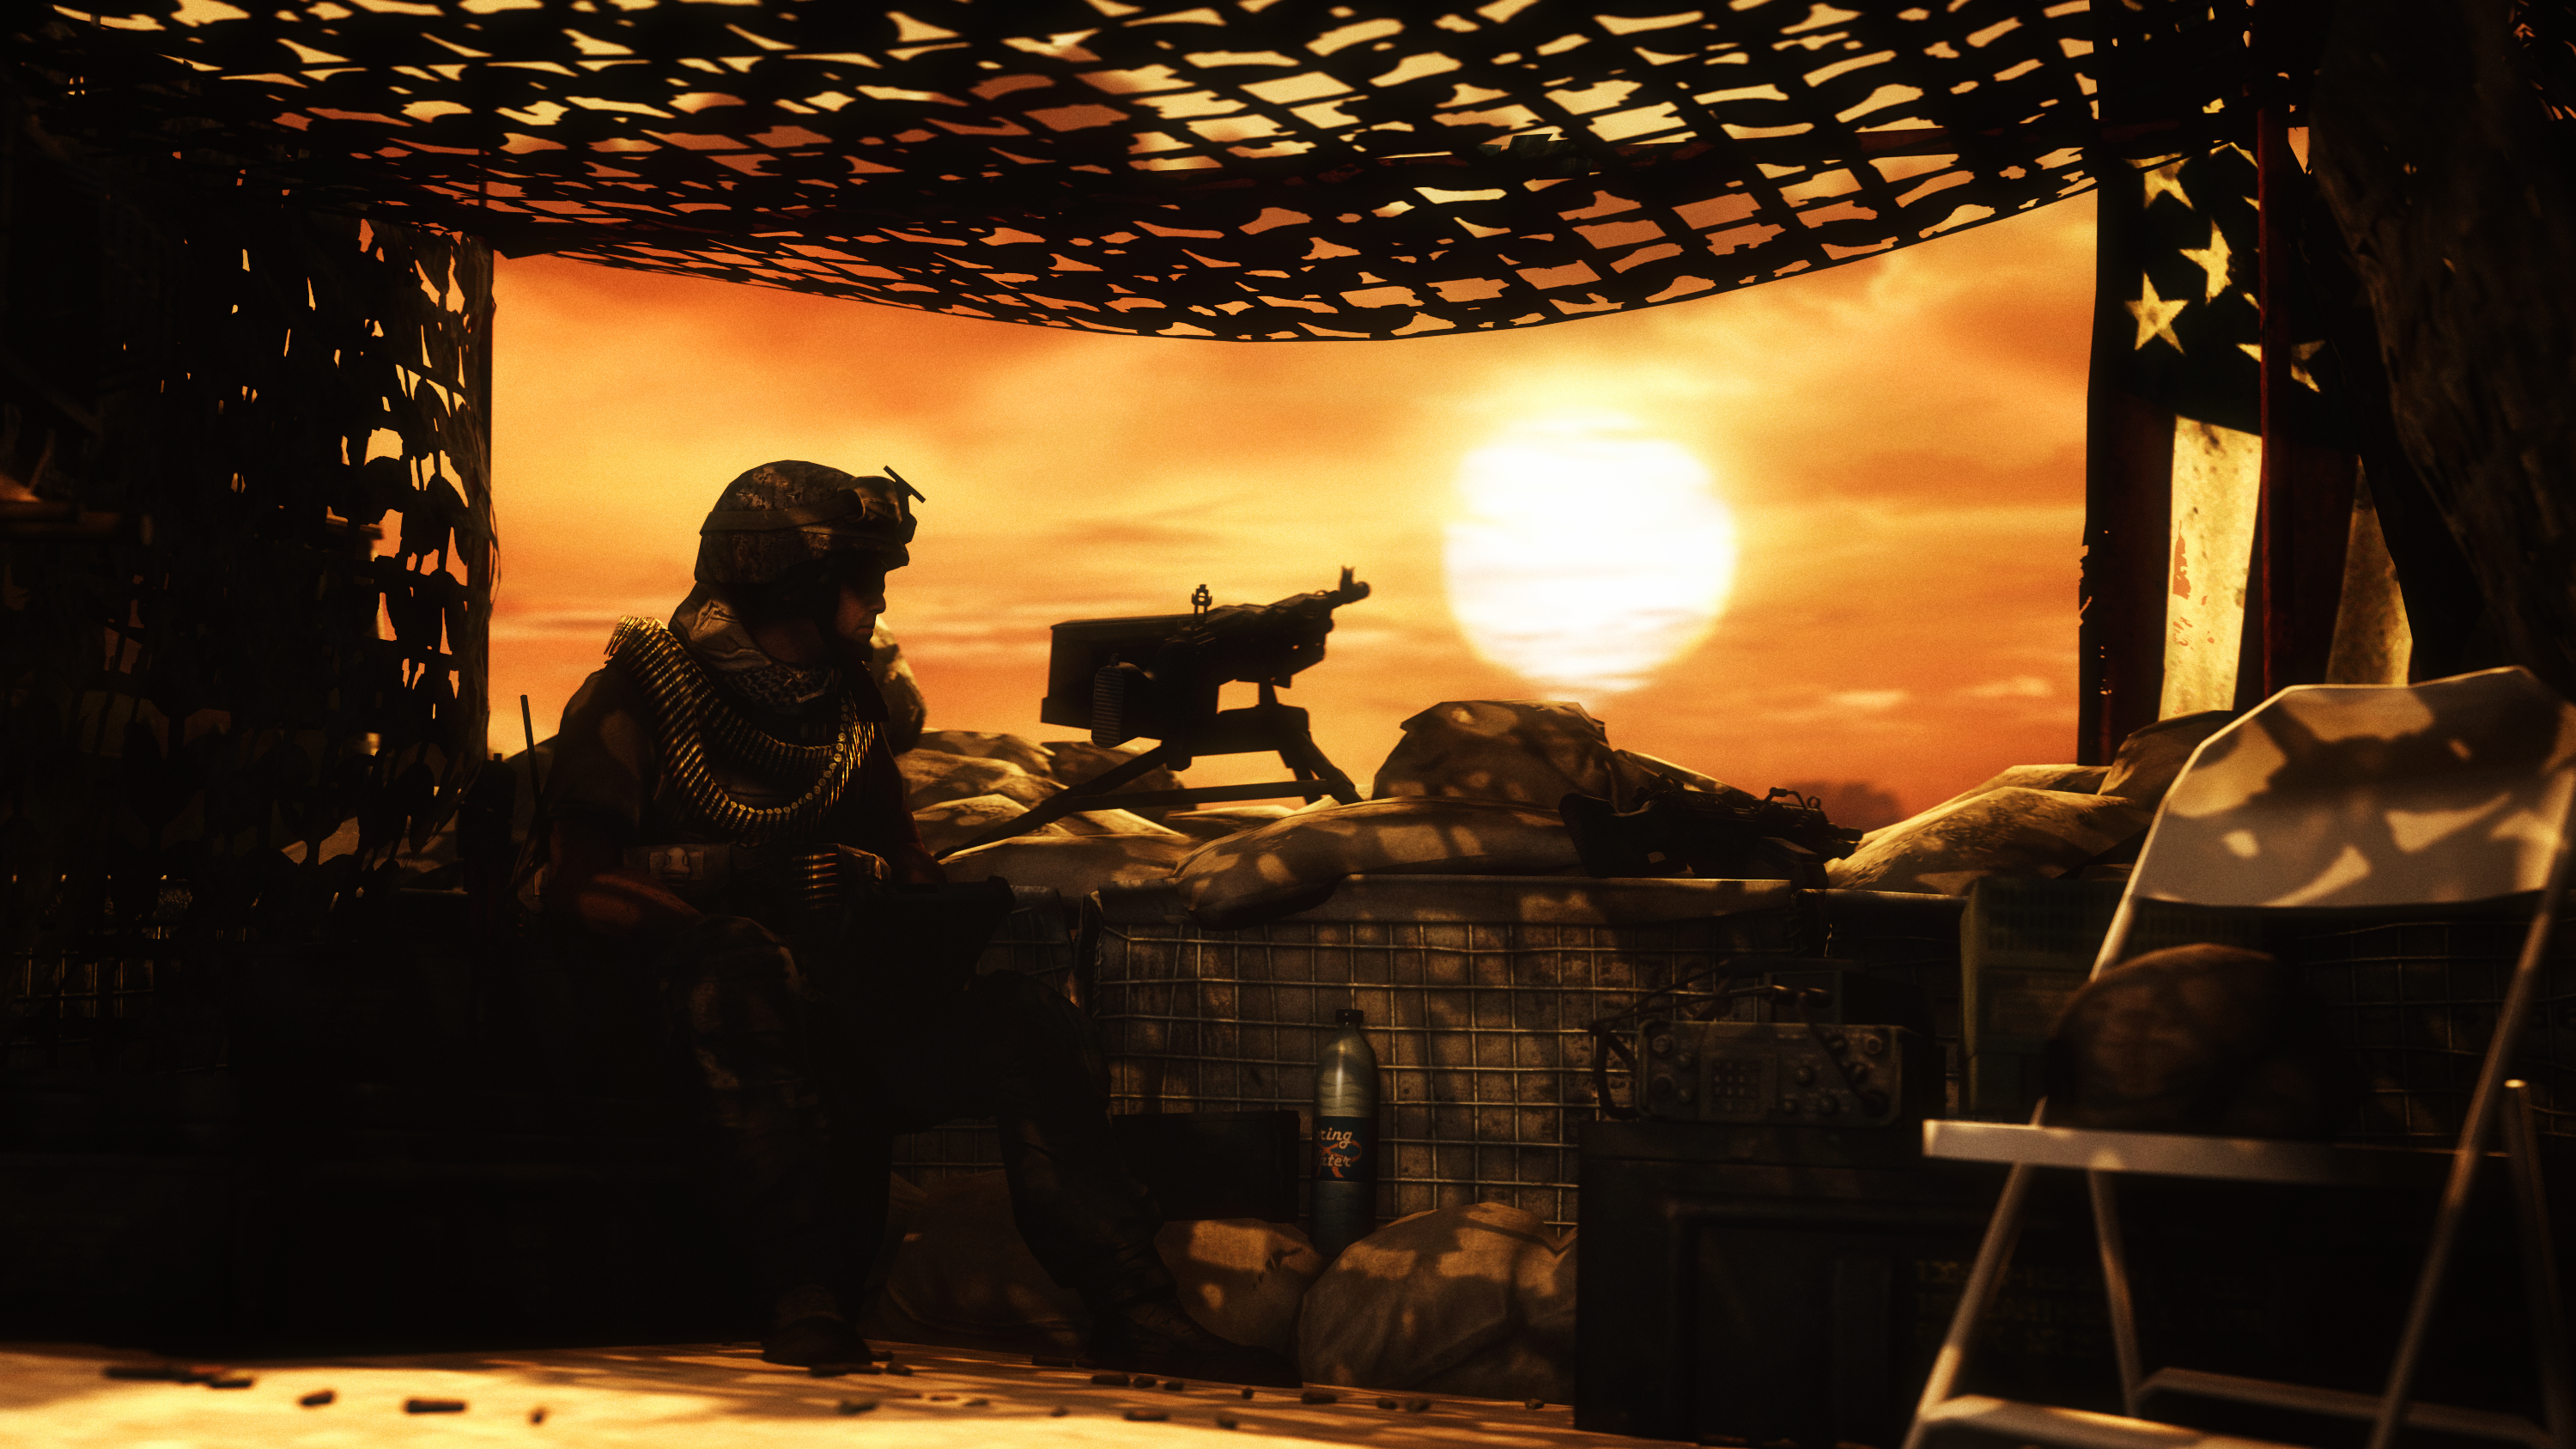 Spec Ops: The Line ported stuff by znalecc - Developers - Facepunch